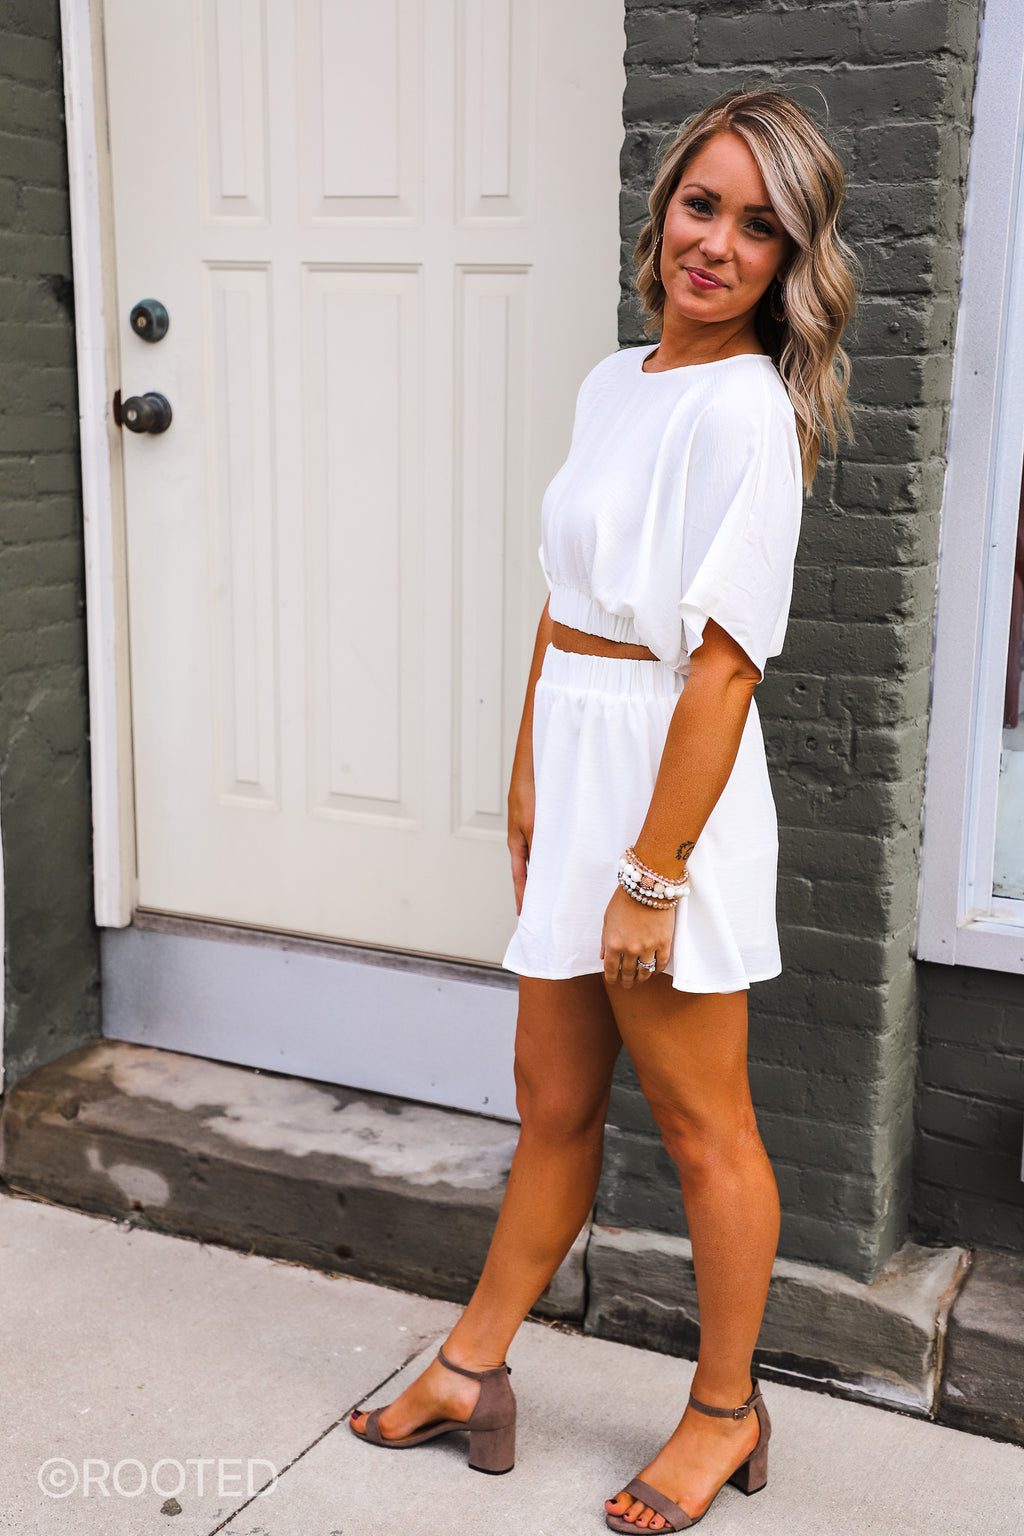 Leo Mocha Sandal - The Rooted Shoppe